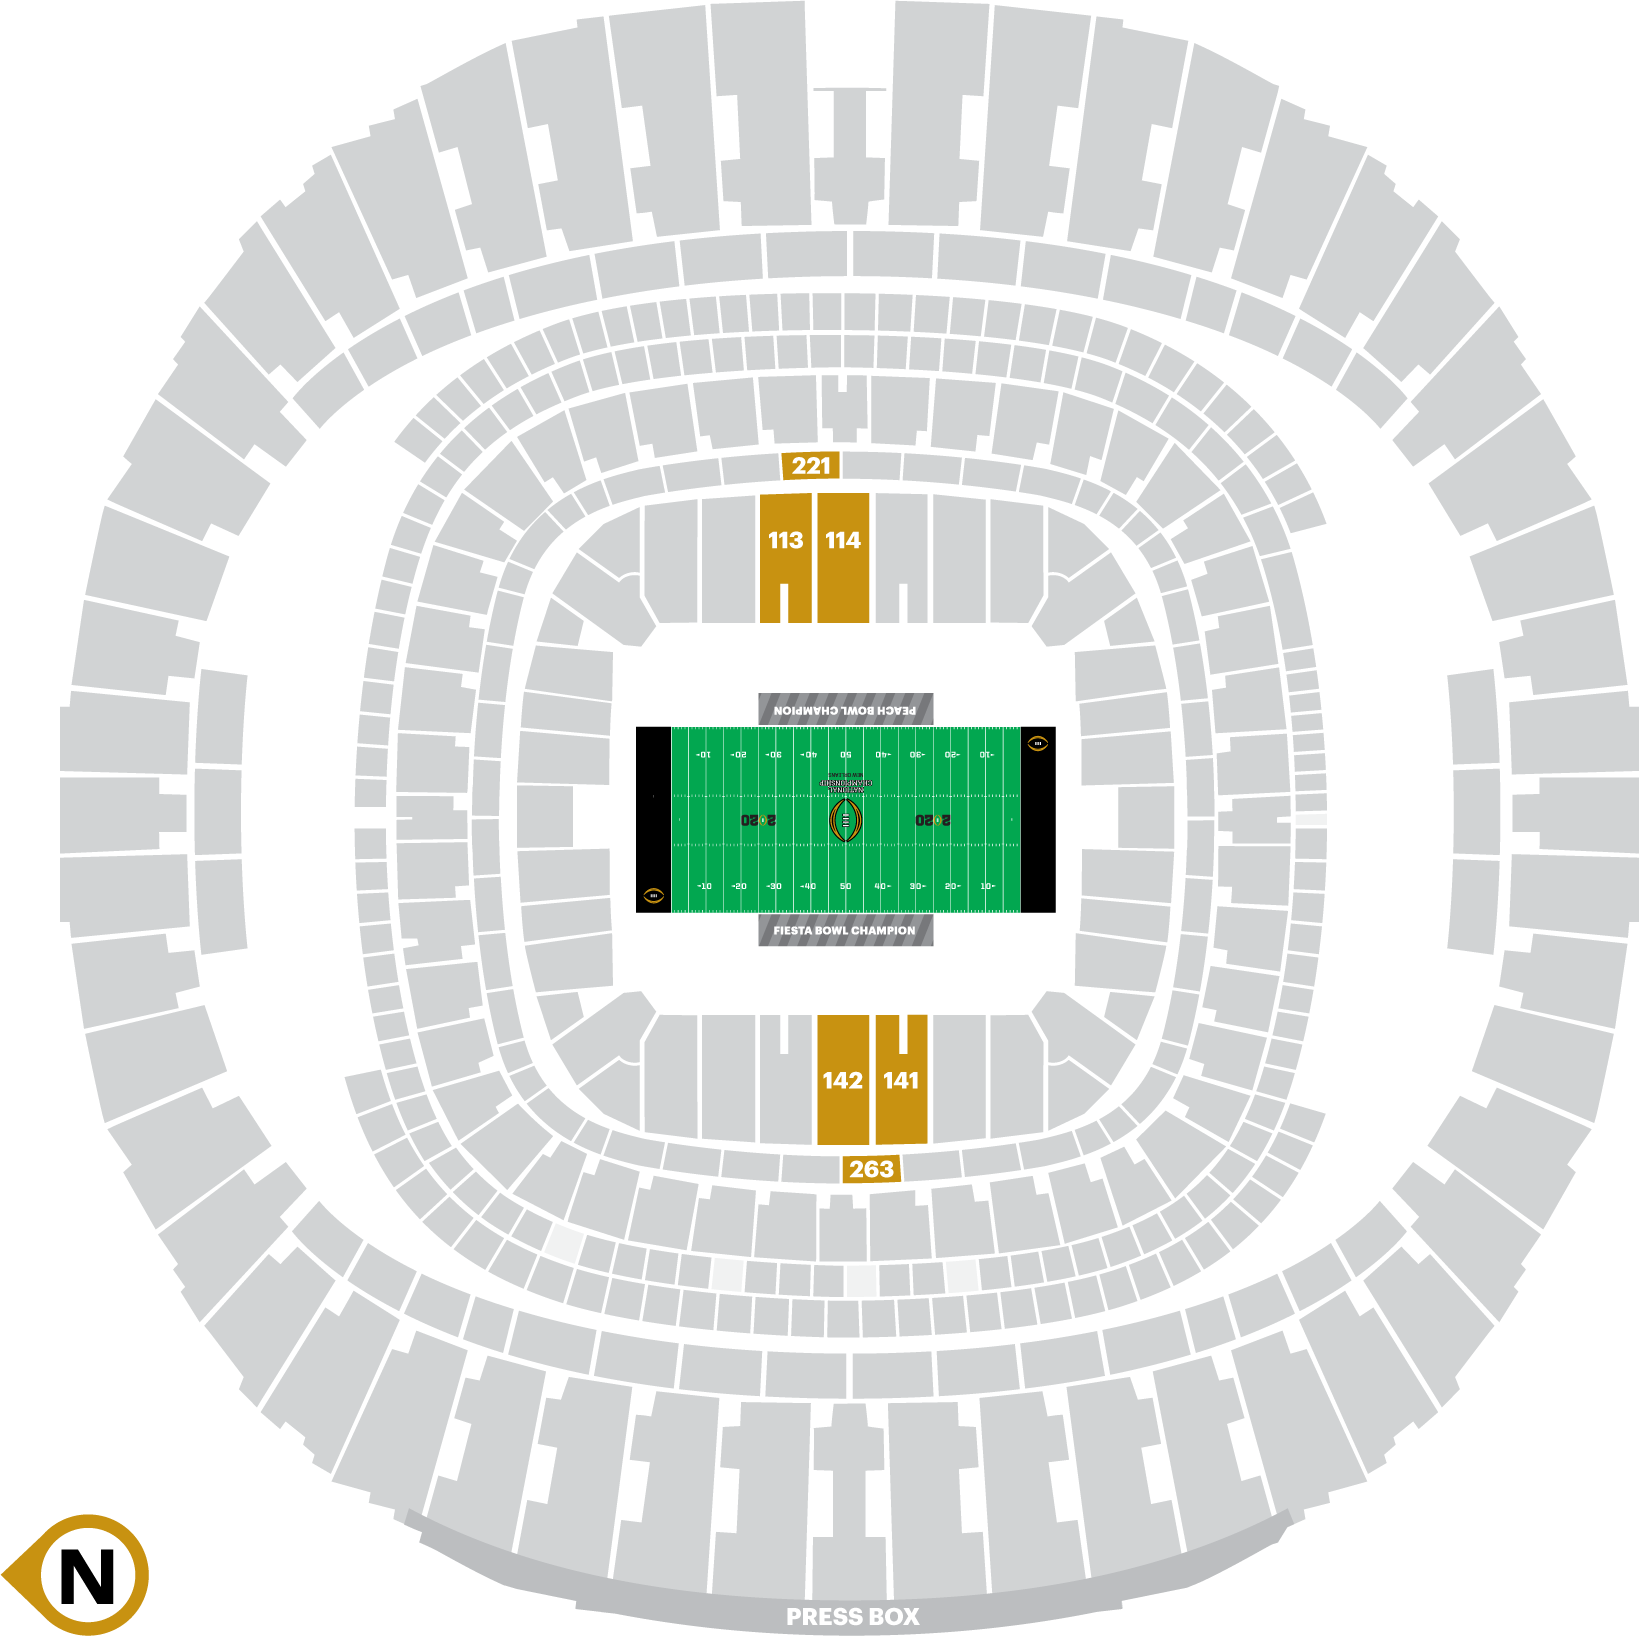 2020-CFP-Seating-Chart-New-Orleans-Hall-of-Fame-1